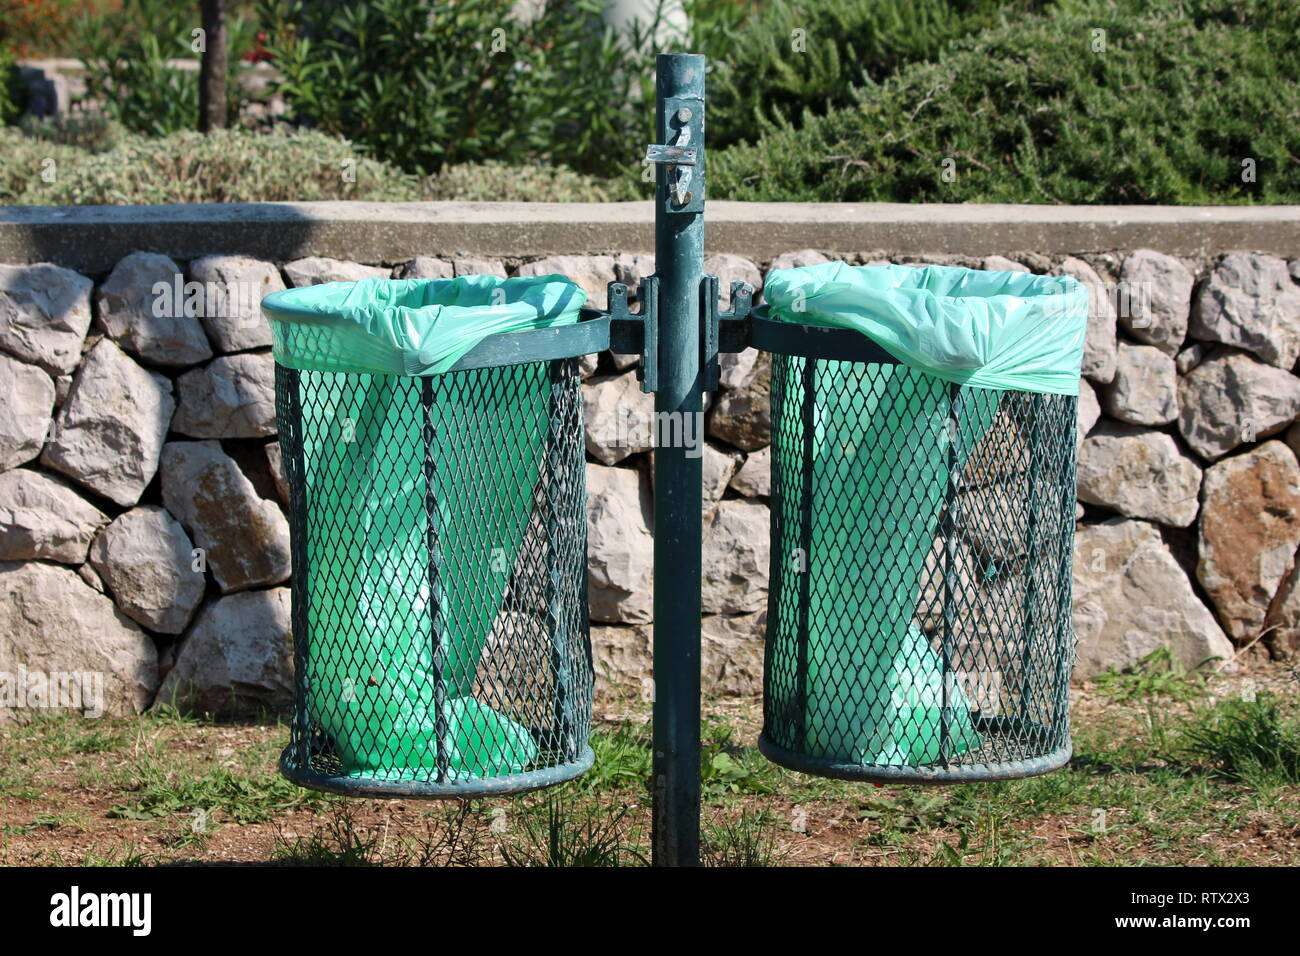 Green metal pole with dual outdoor public trash cans with fresh new nylon bags inserted and broken ashtray on top with traditional stone wall - Stock Image